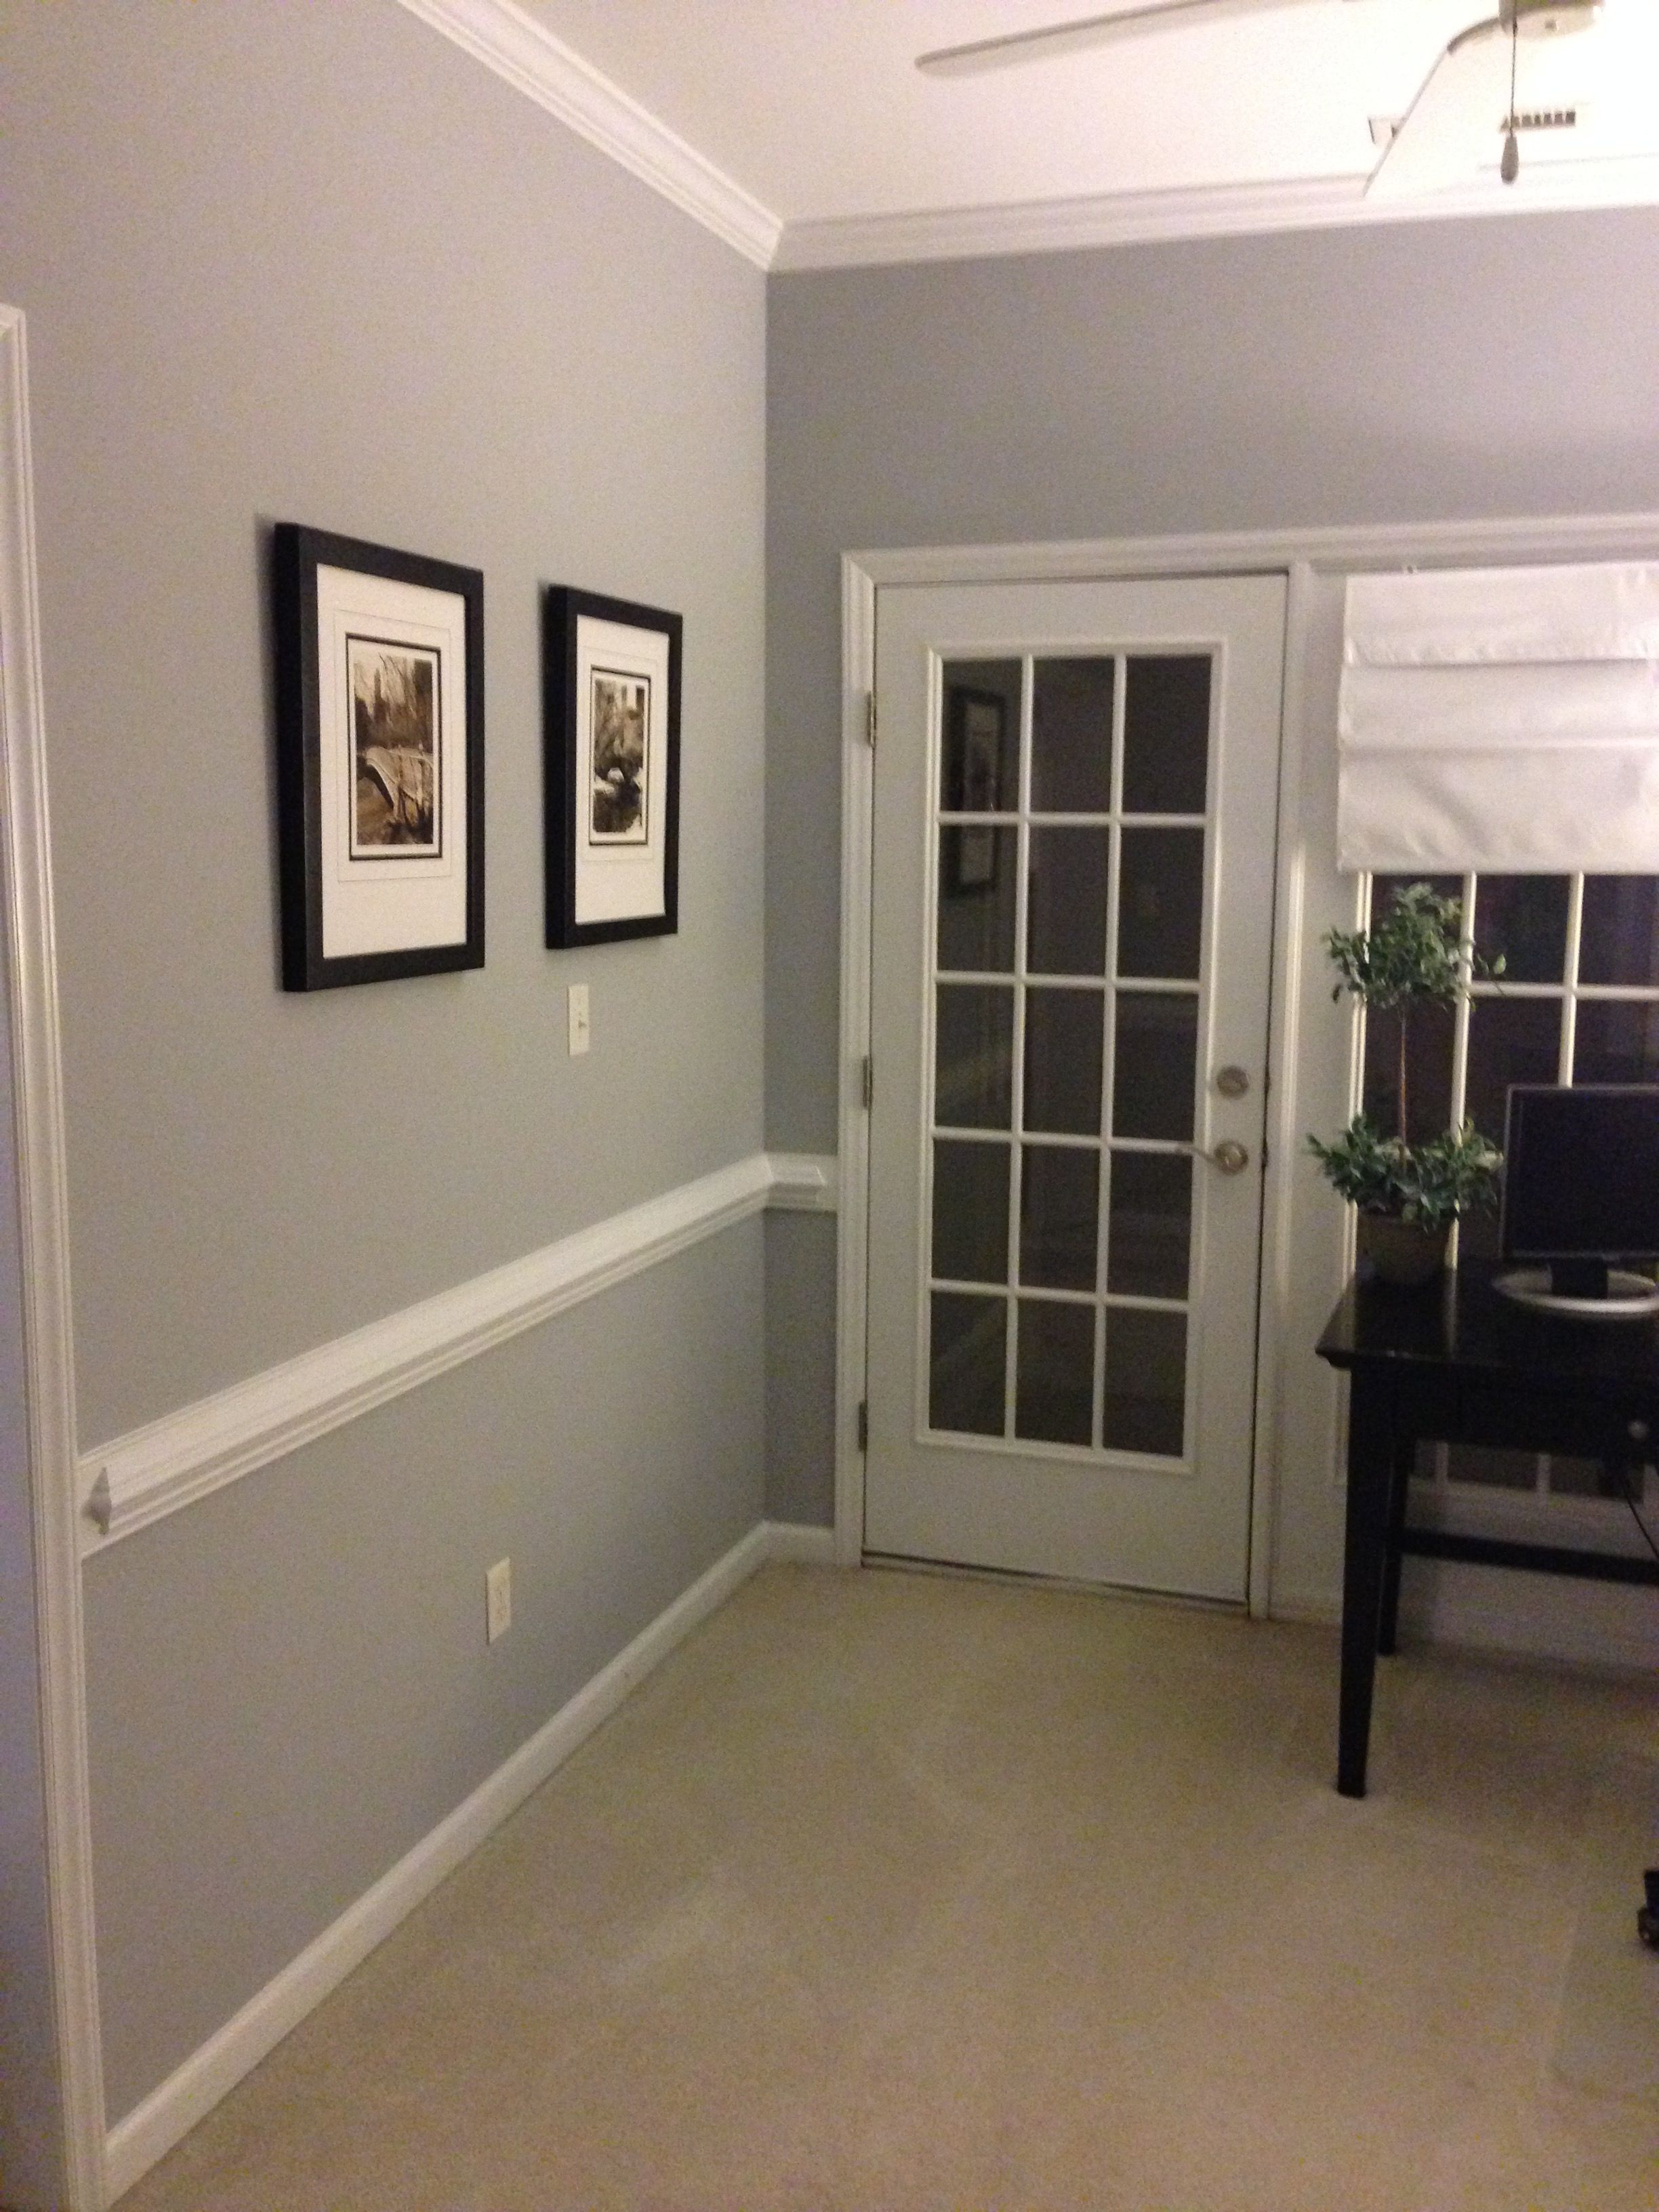 Sherwin Williams Lazy Gray (With images) Lazy gray